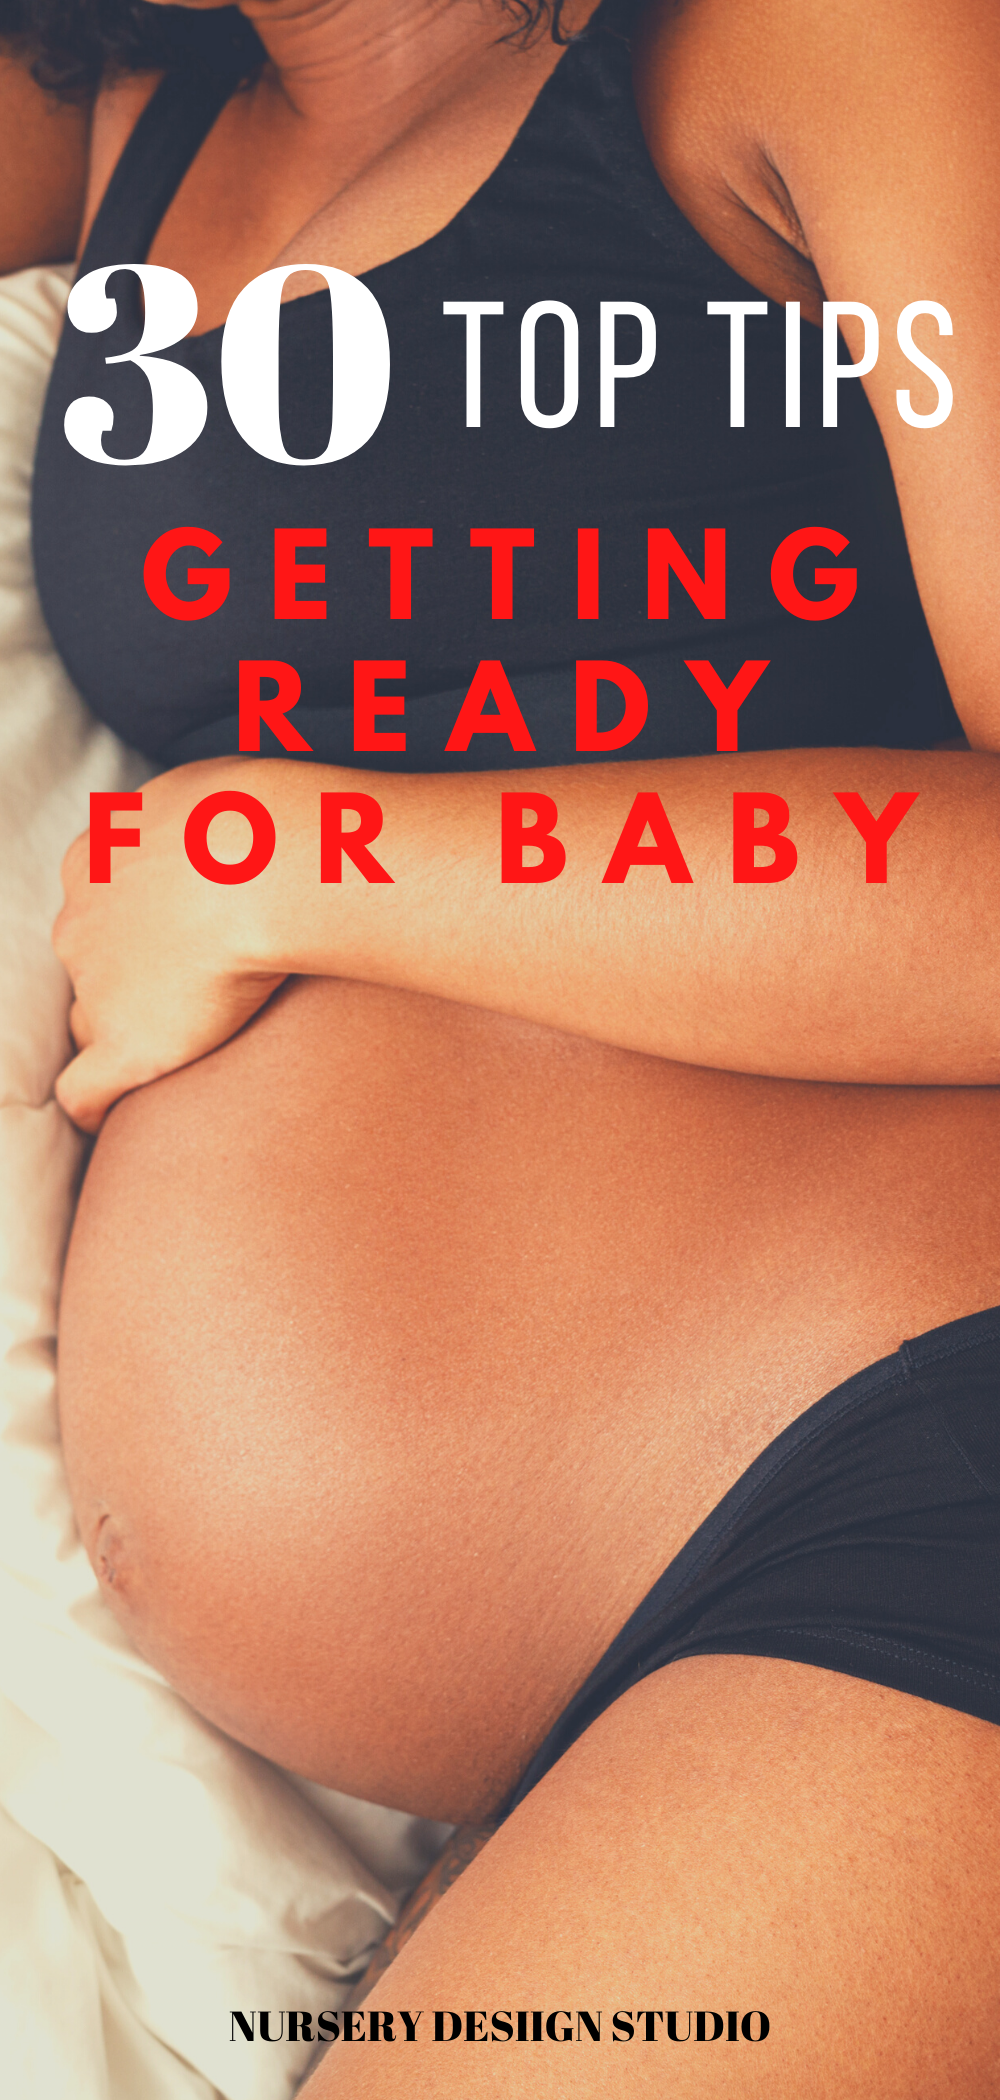 TOP TIPS GETTING READY FOR BABY